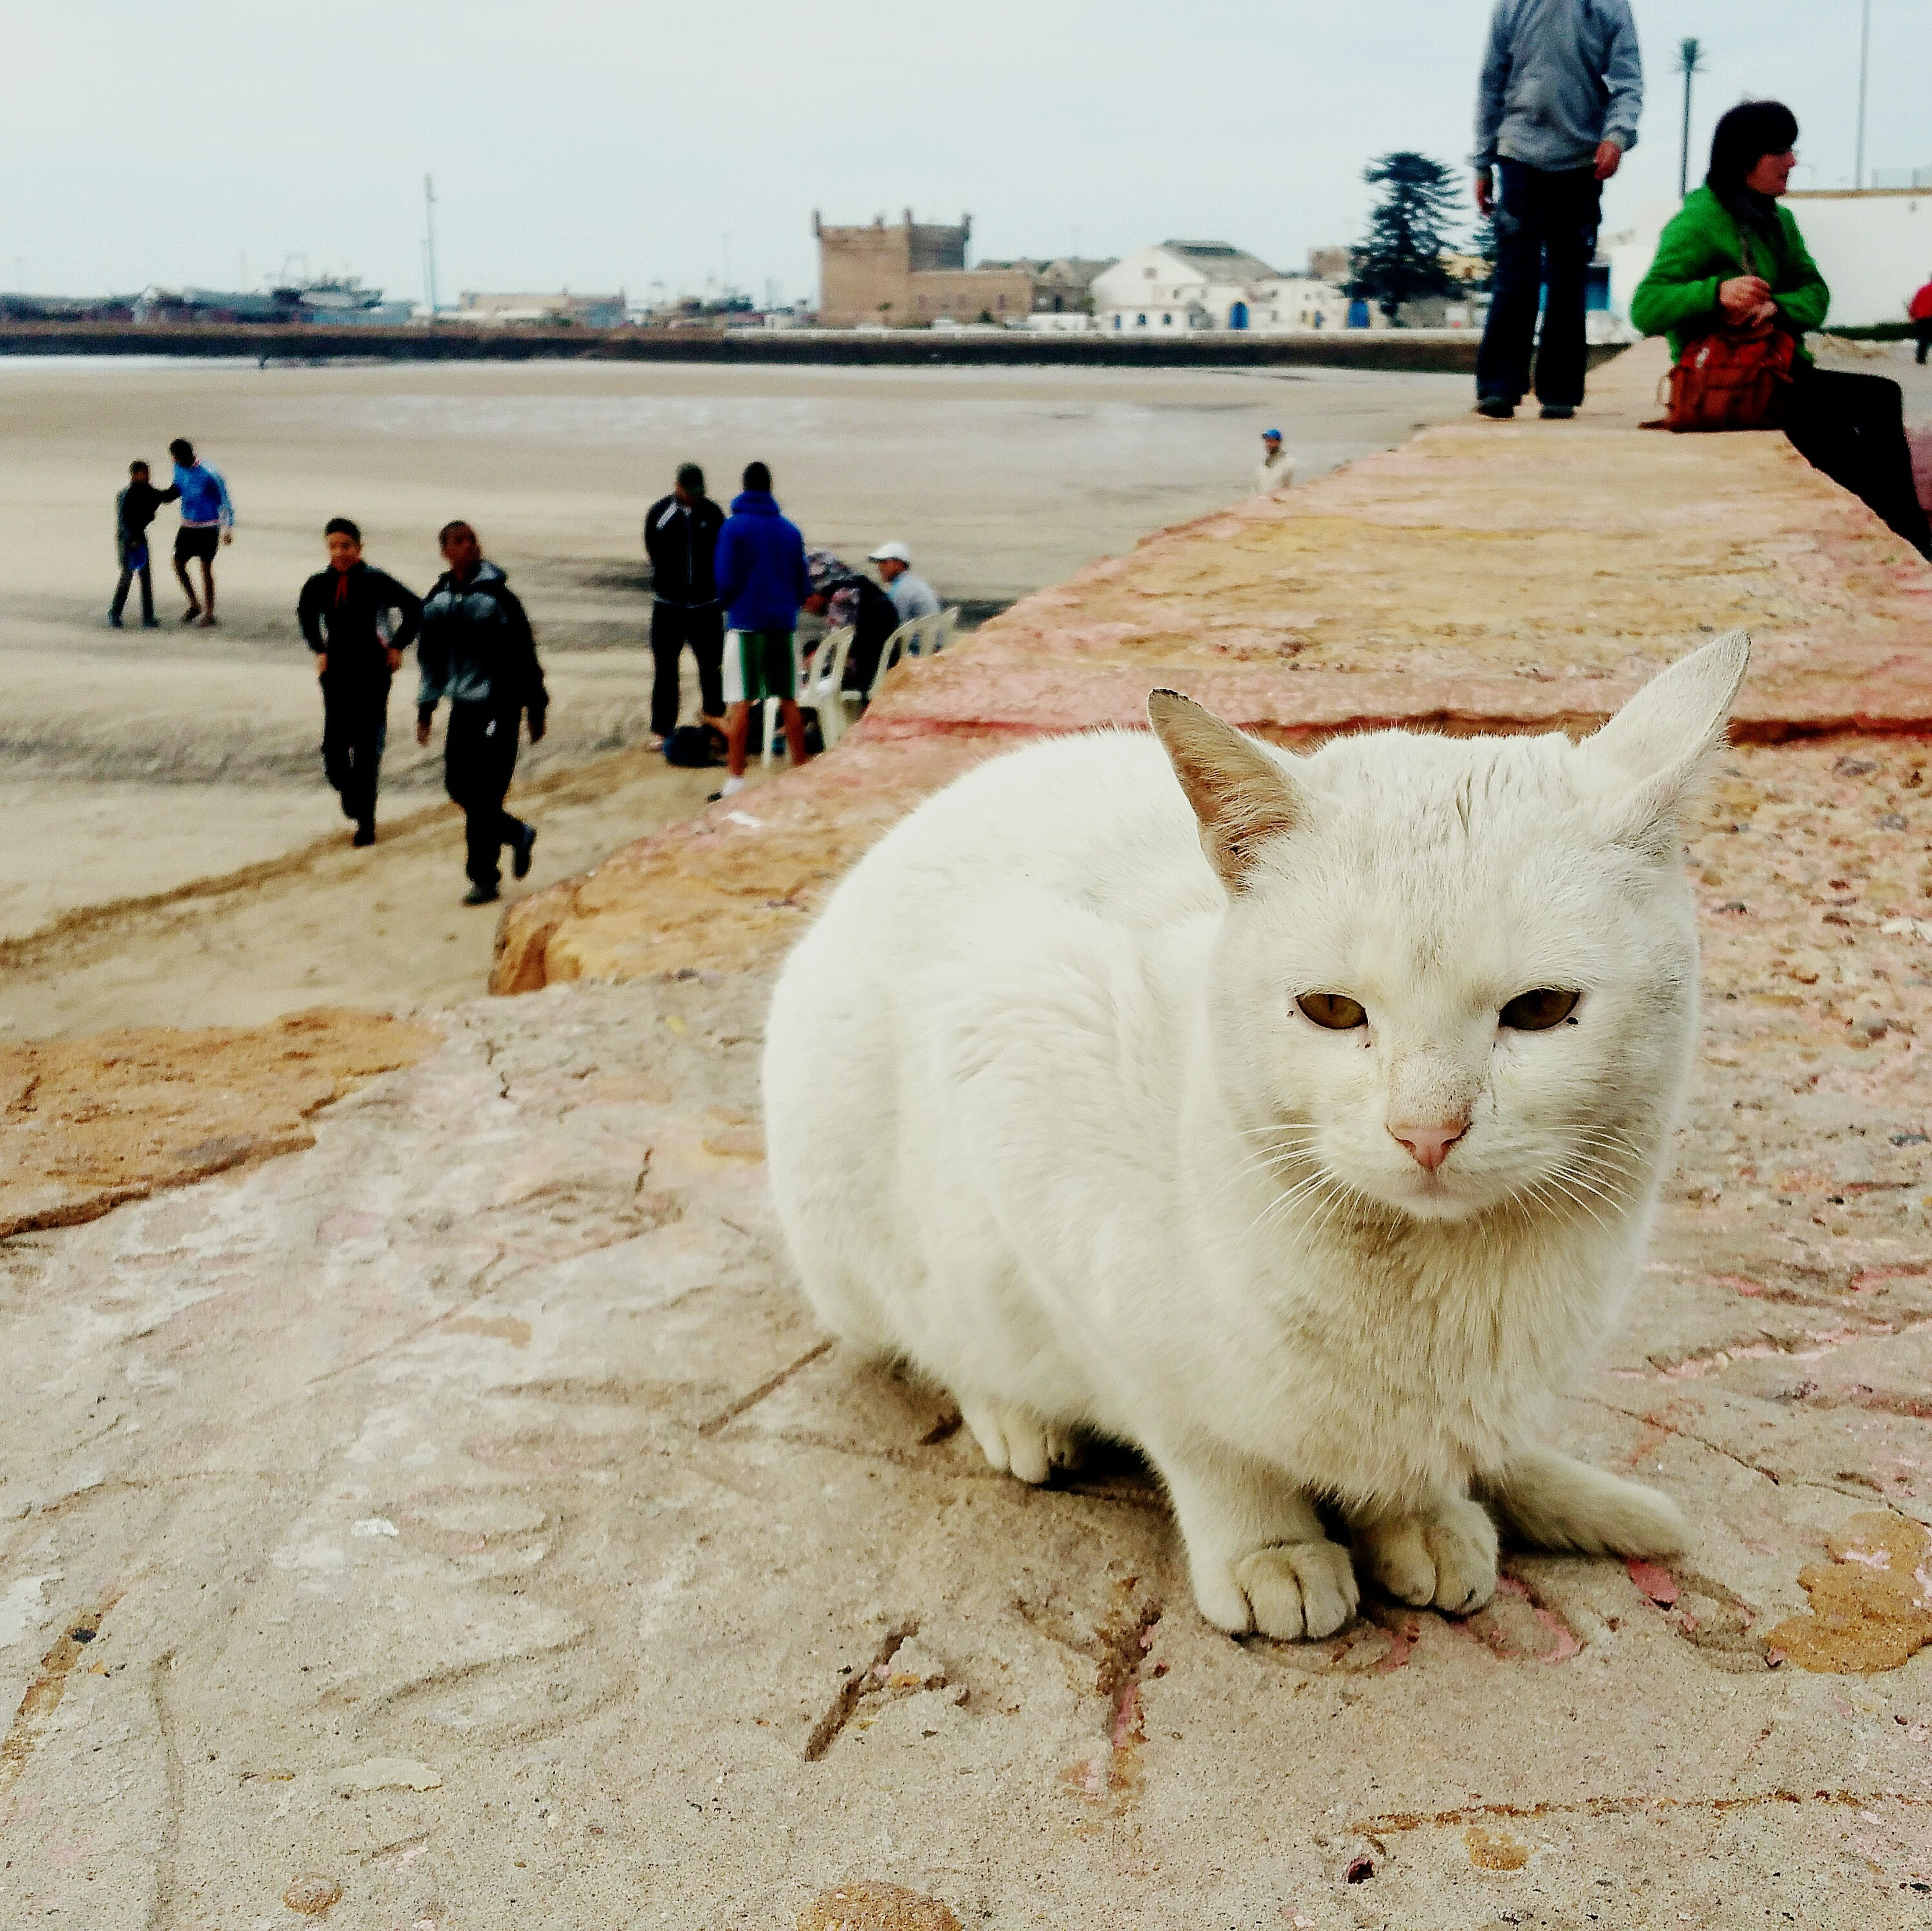 animal themes, walking, domestic animals, street, mammal, men, pets, built structure, architecture, incidental people, building exterior, full length, day, person, lifestyles, one animal, outdoors, city, rear view